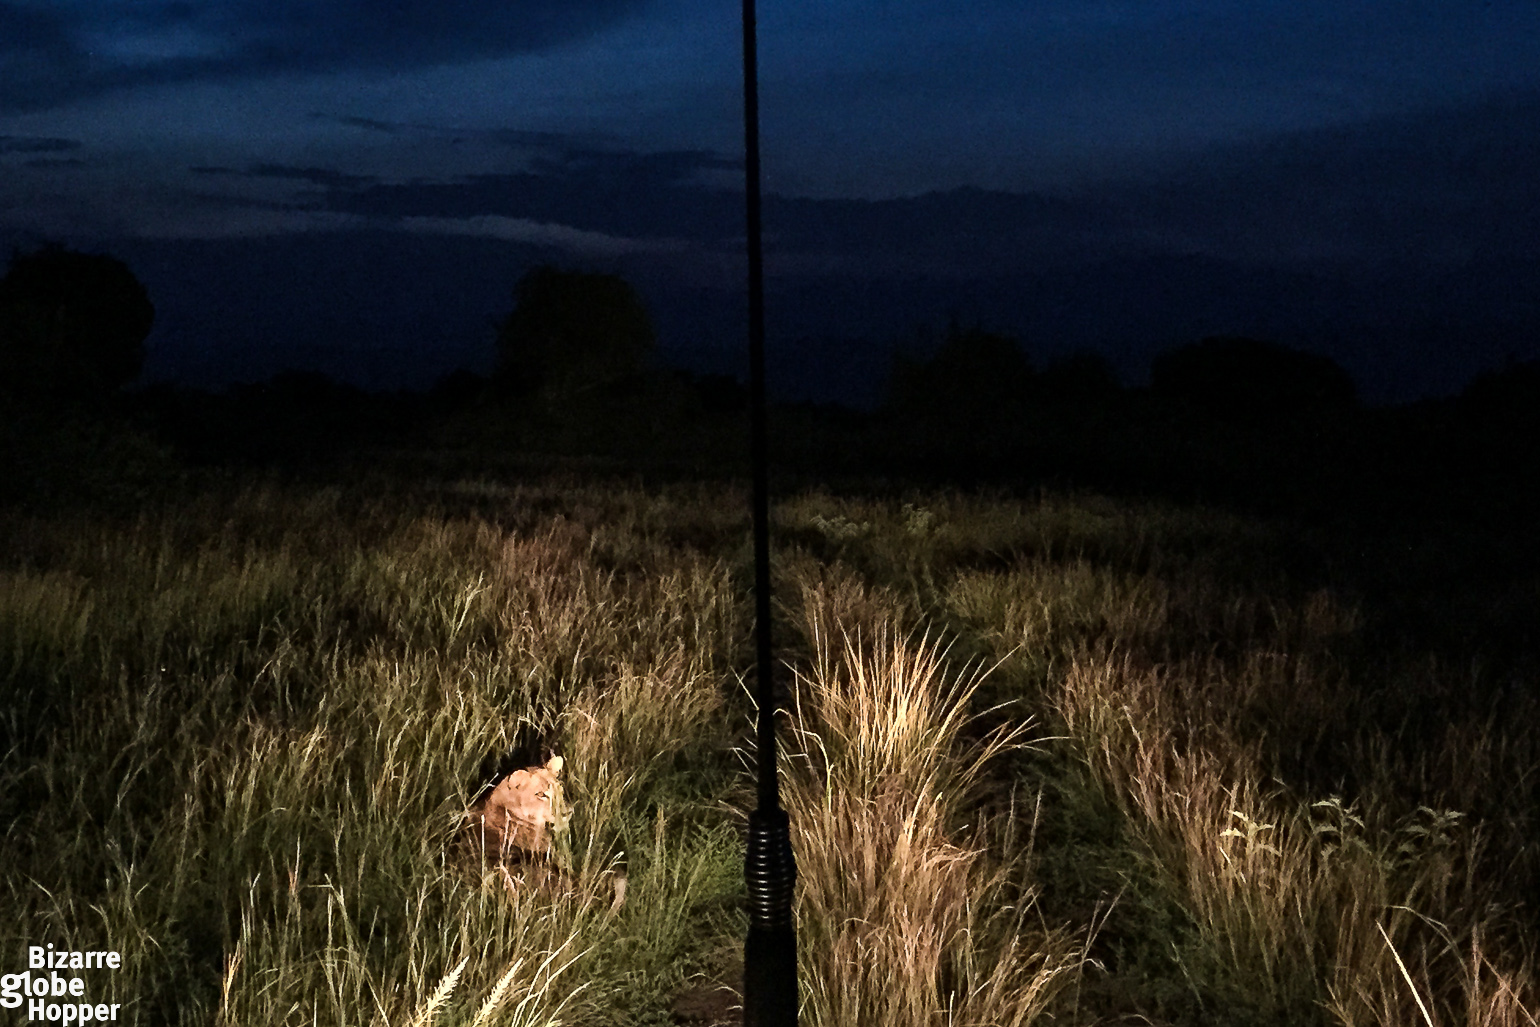 Lion on a night game drive in Queen Elizabeth National Park, Uganda